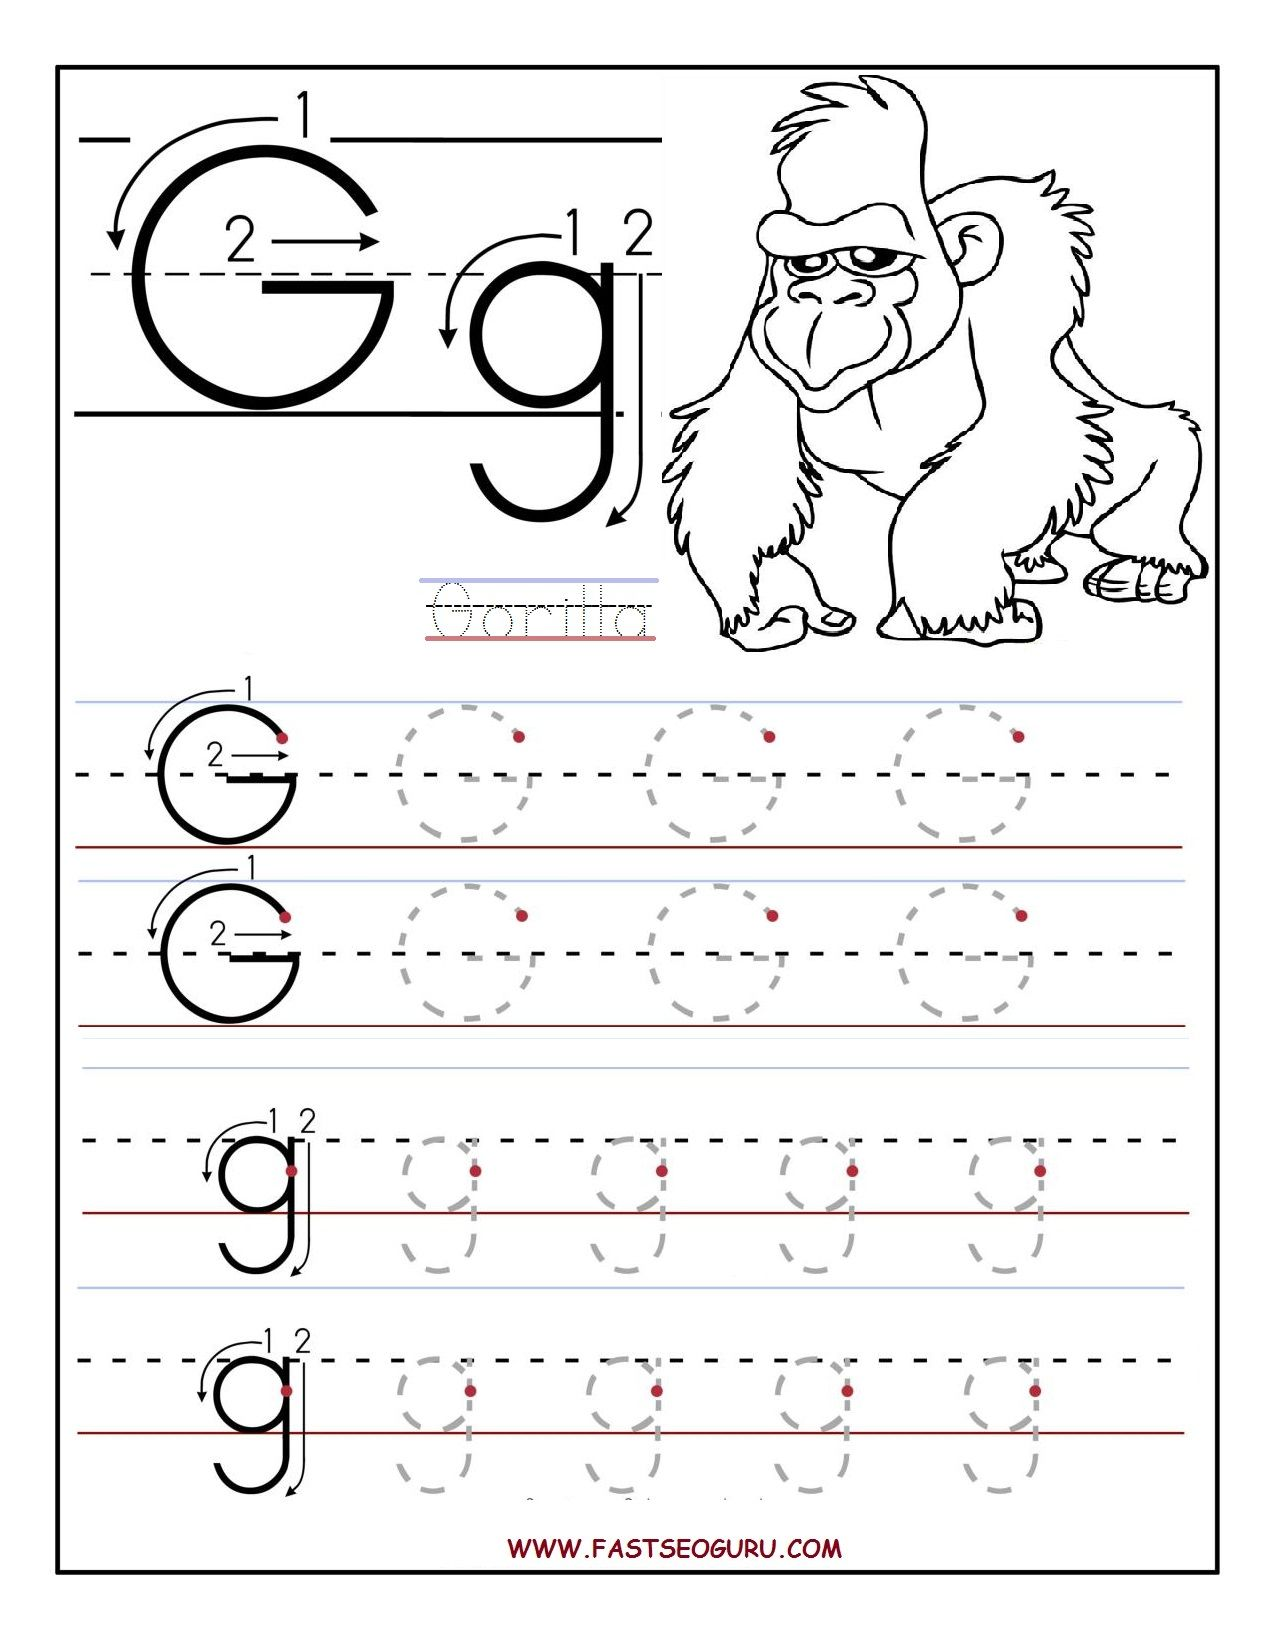 Free Worksheet Letter G Worksheets For Kindergarten 17 best images about letter g on pinterest preschool activities and printable letters